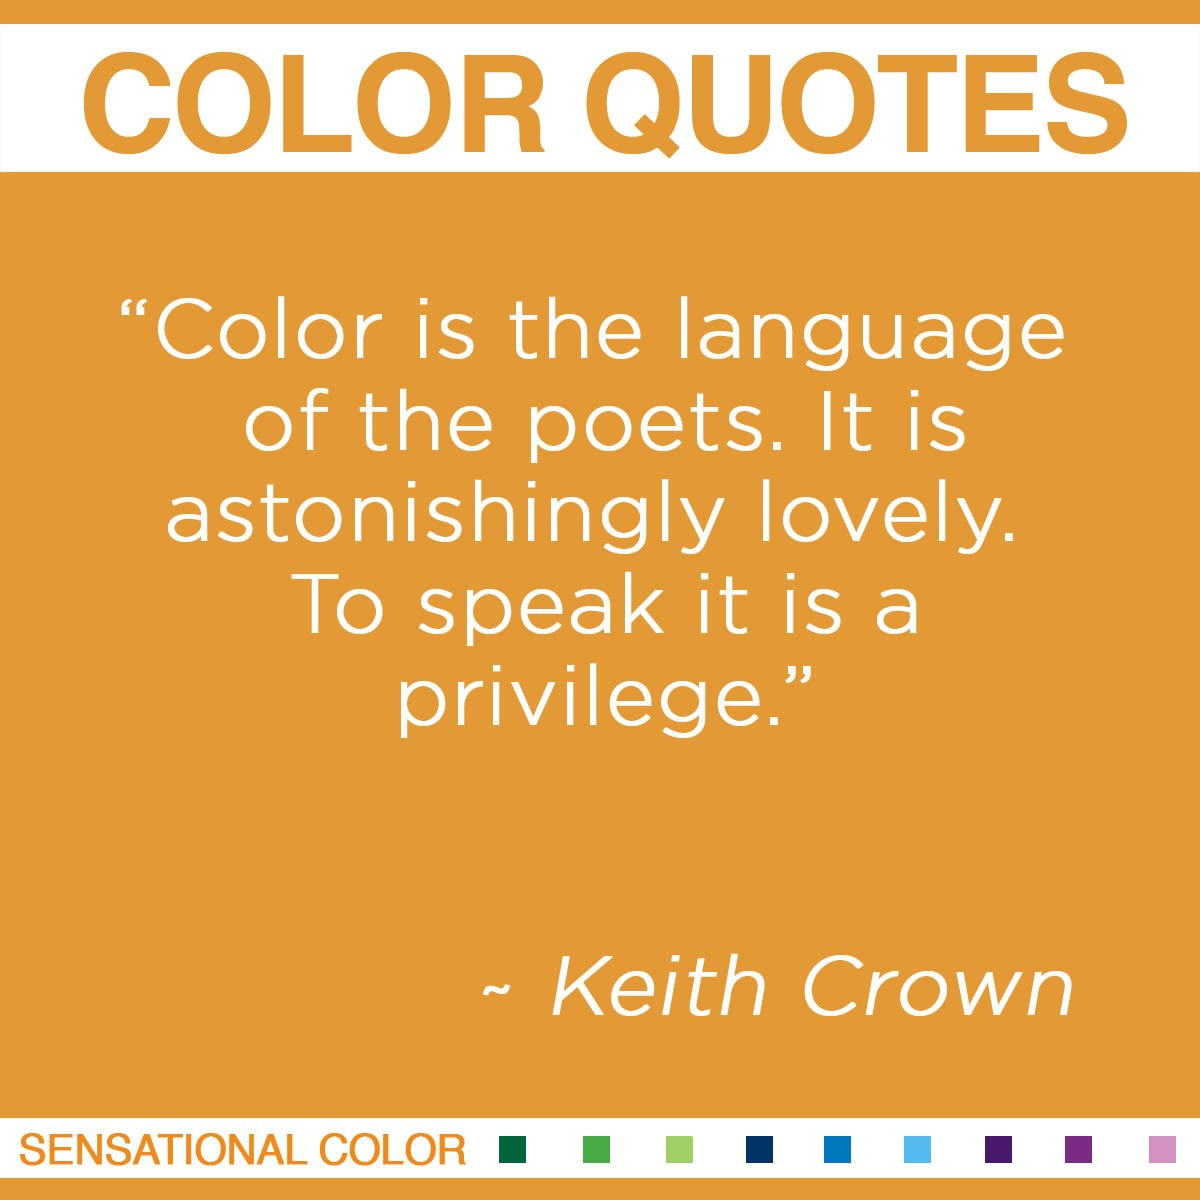 """Color is the language of the poets. It is astonishingly lovely. To speak it is a privilege."" - Keith Crown"